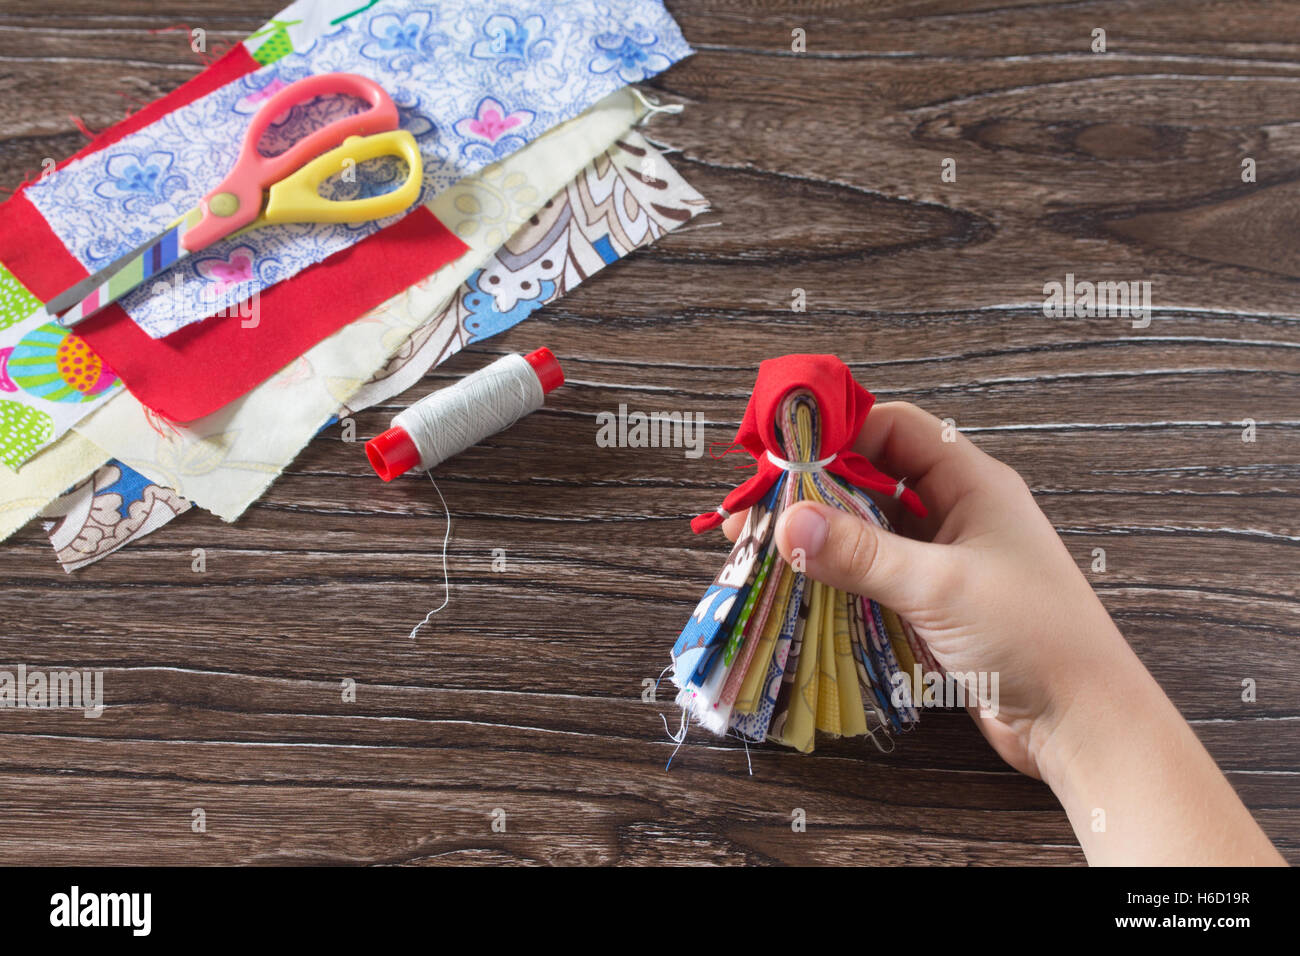 Protective averter, textile doll Traditional Russian. Strips of fabric, thread, scissors on wood background. Sewing - Stock Image